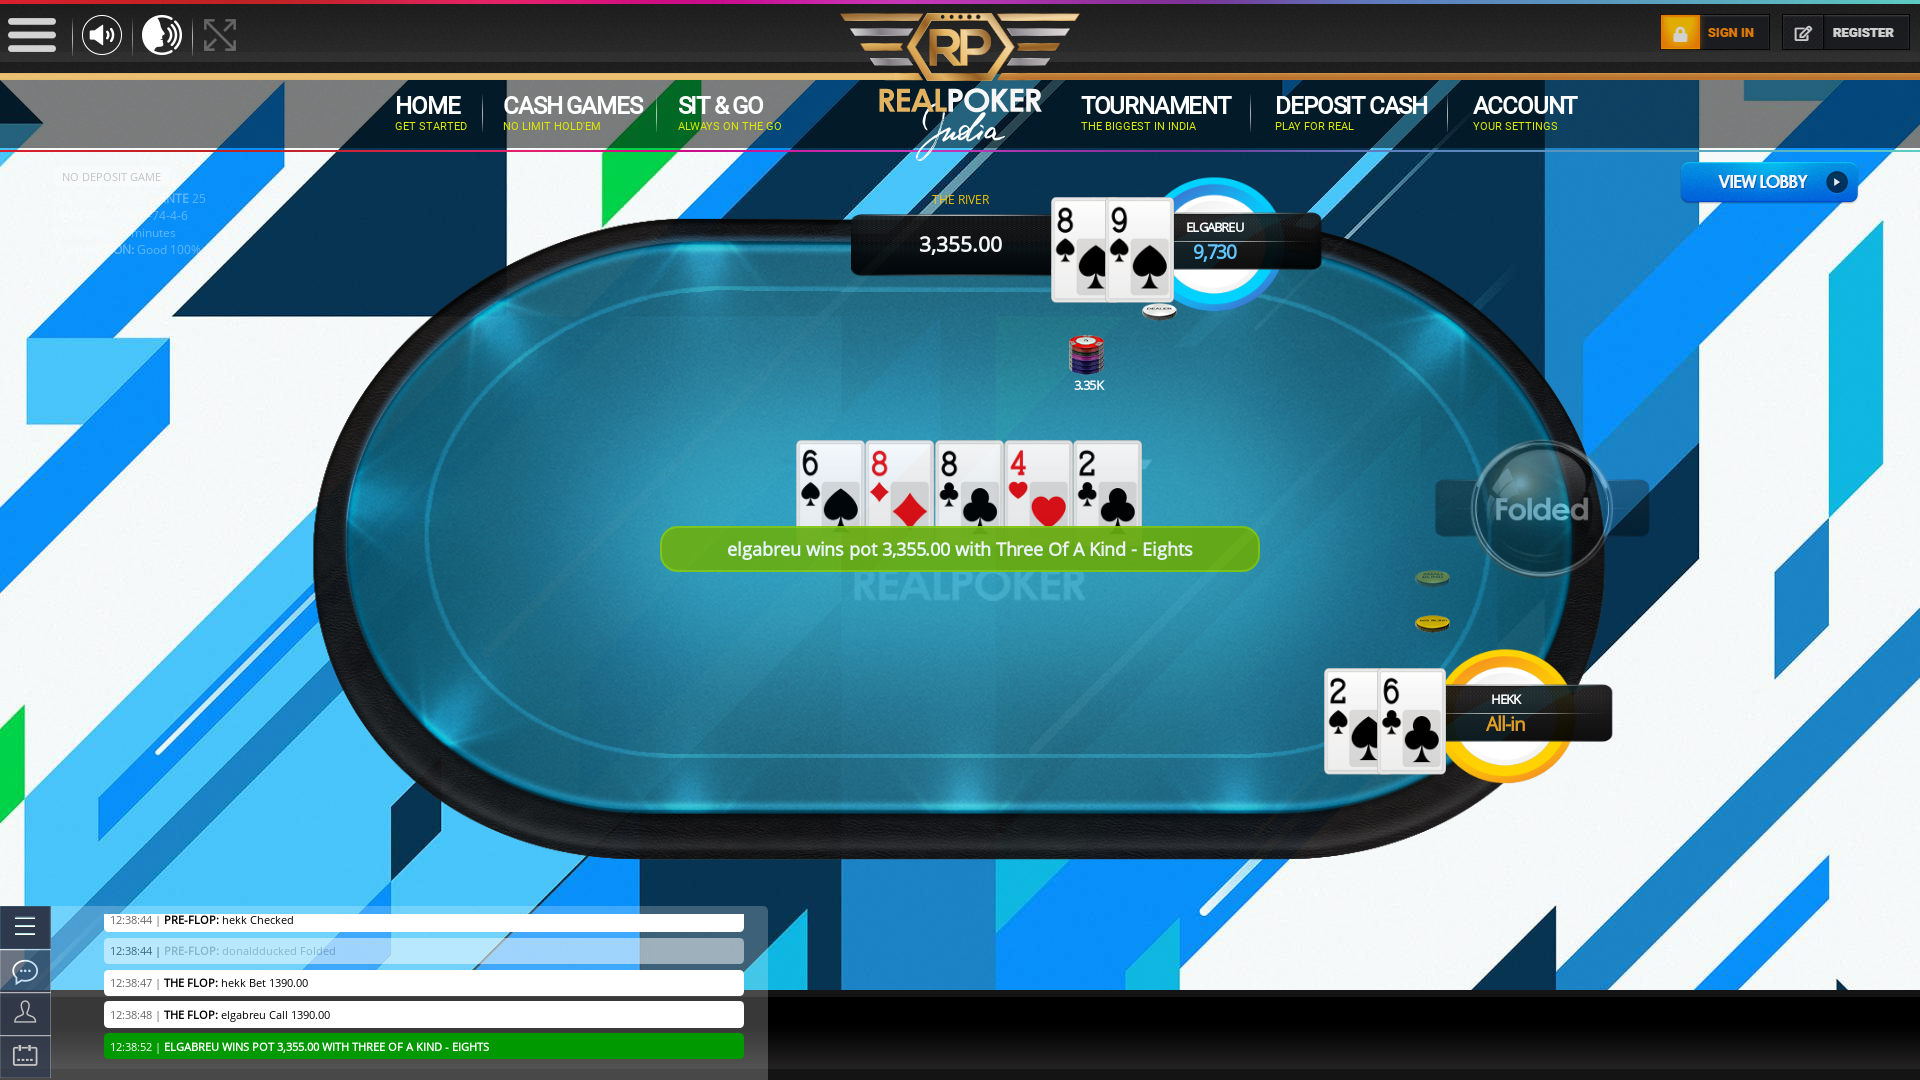 10 player texas holdem table at real poker with the table id 260887